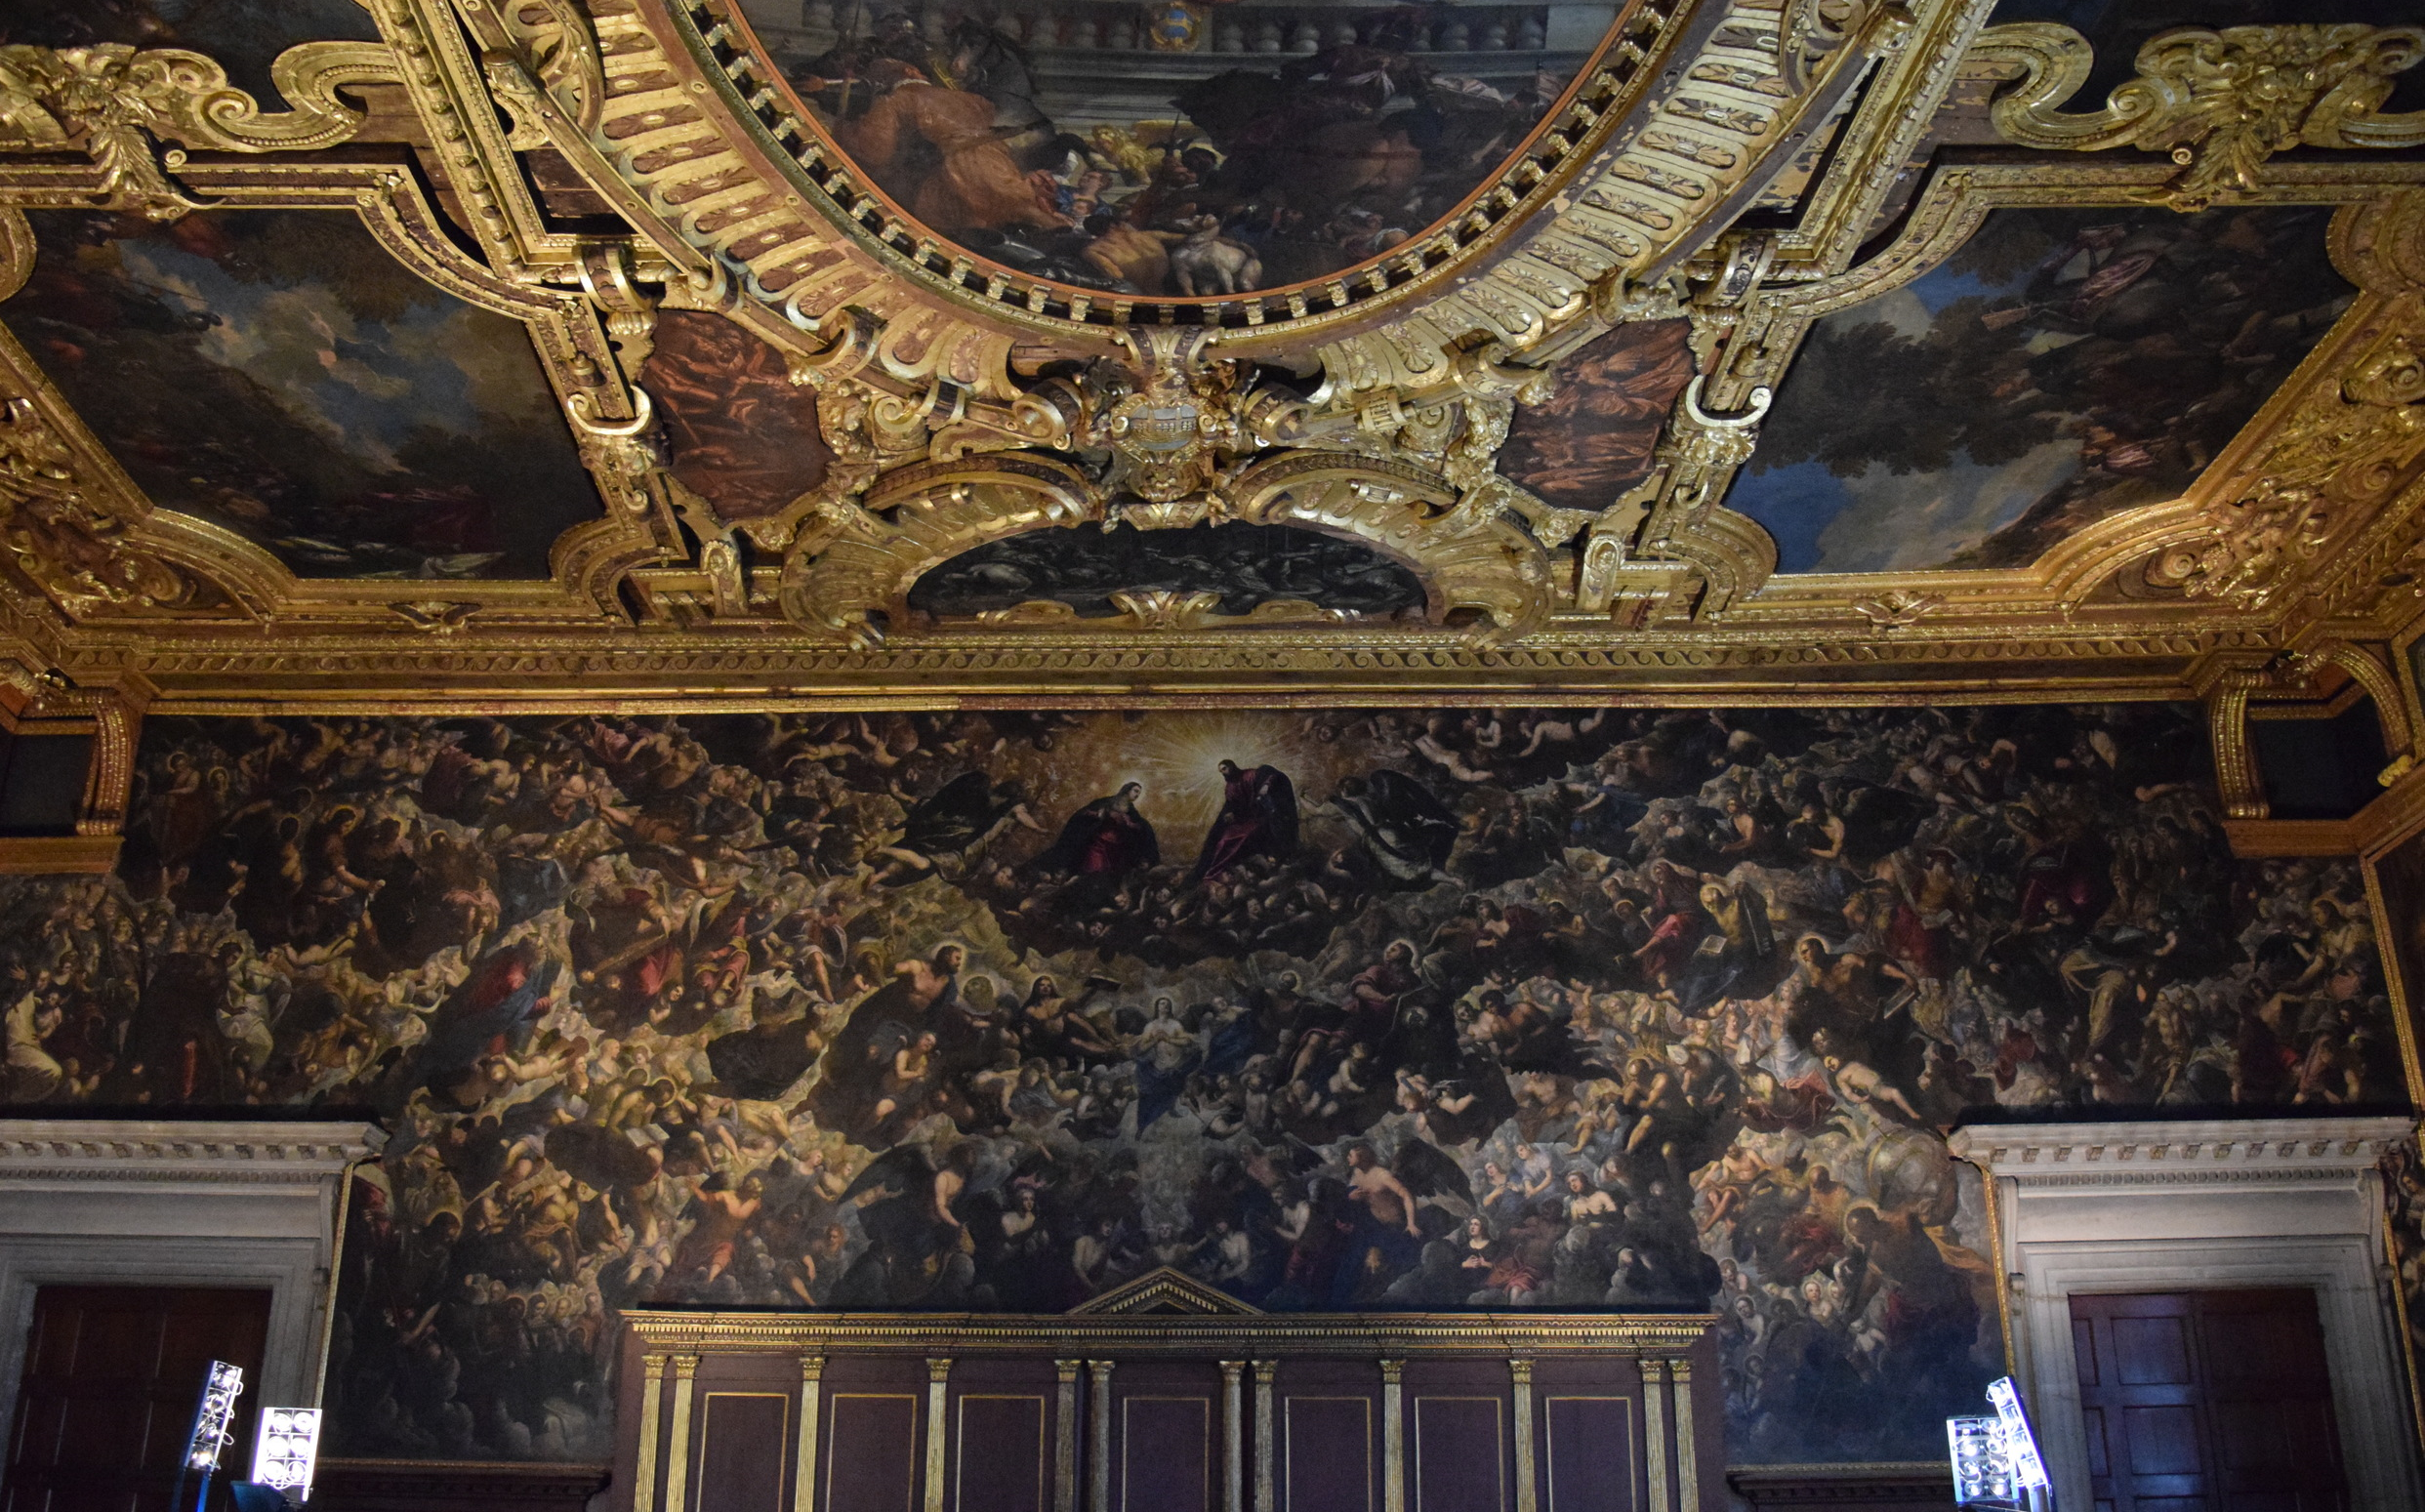 Il Paradiso by Tintoretto is the focal point of the Great Council Chamber and the largest canvas painting in the world